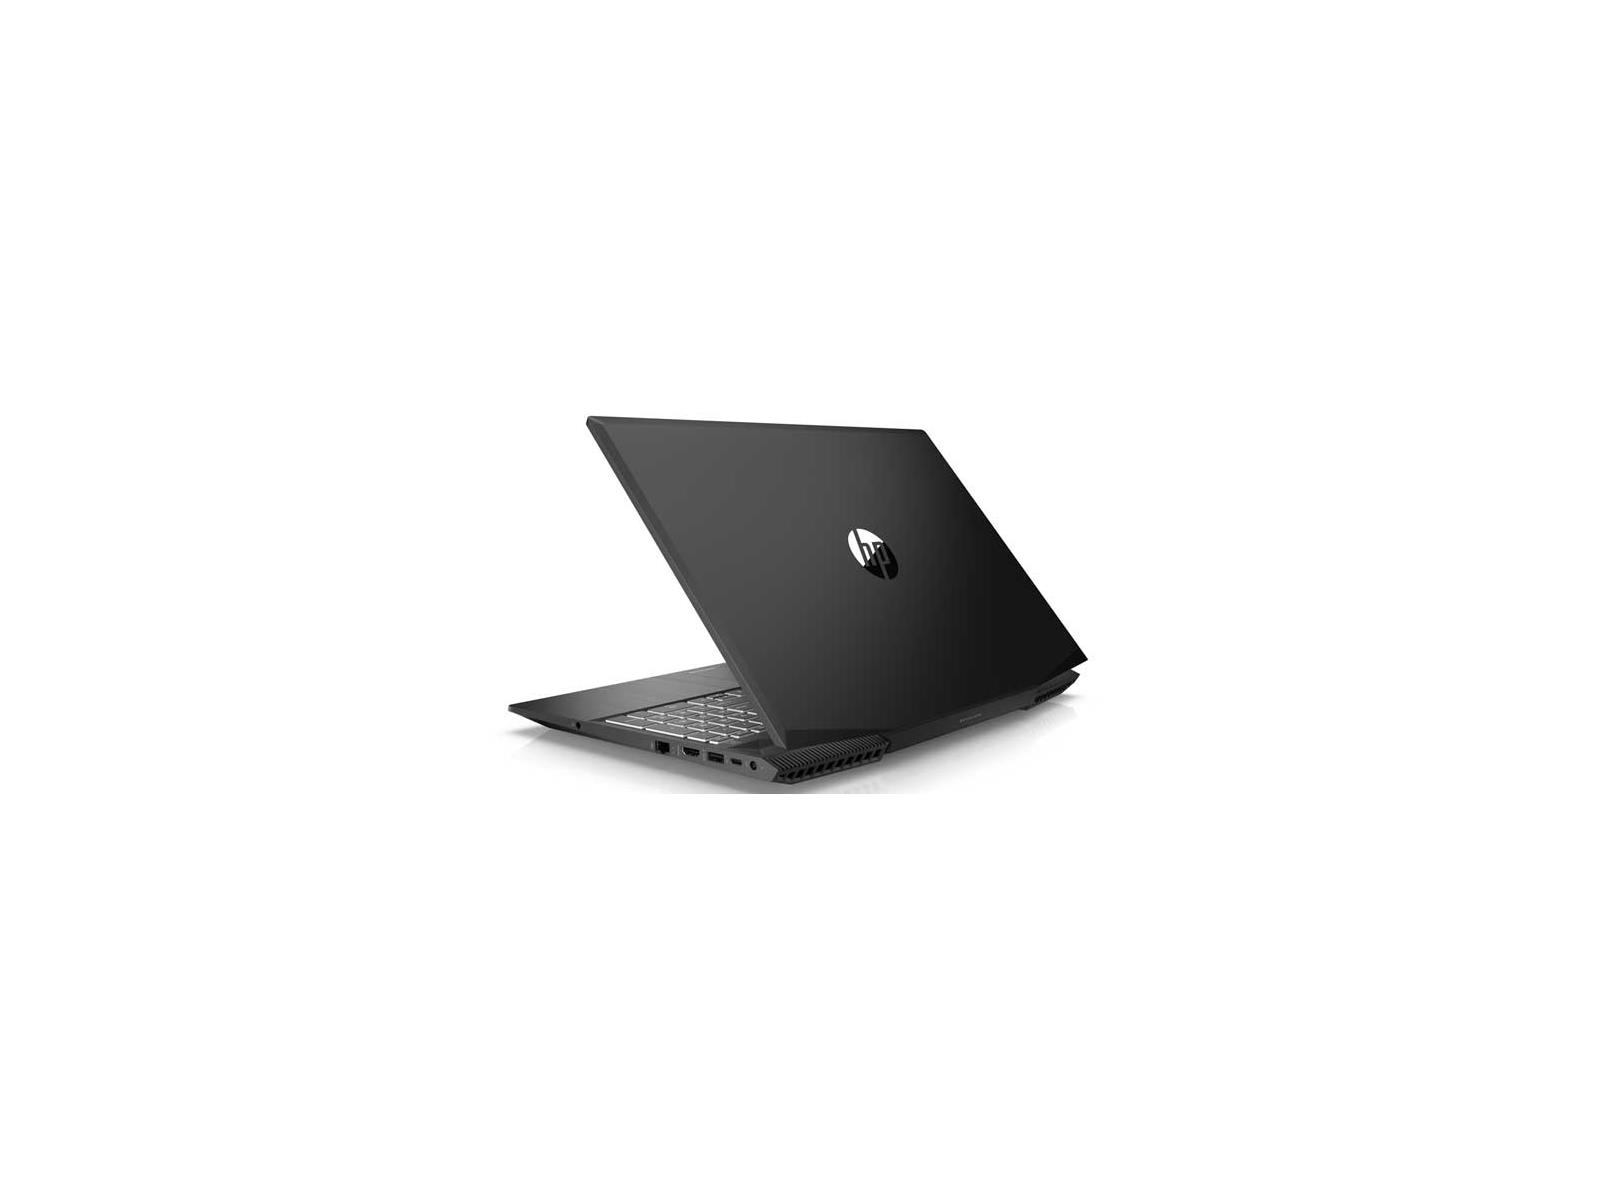 HP Rolls Out New Pavilion and Pavilion Gaming Notebooks And